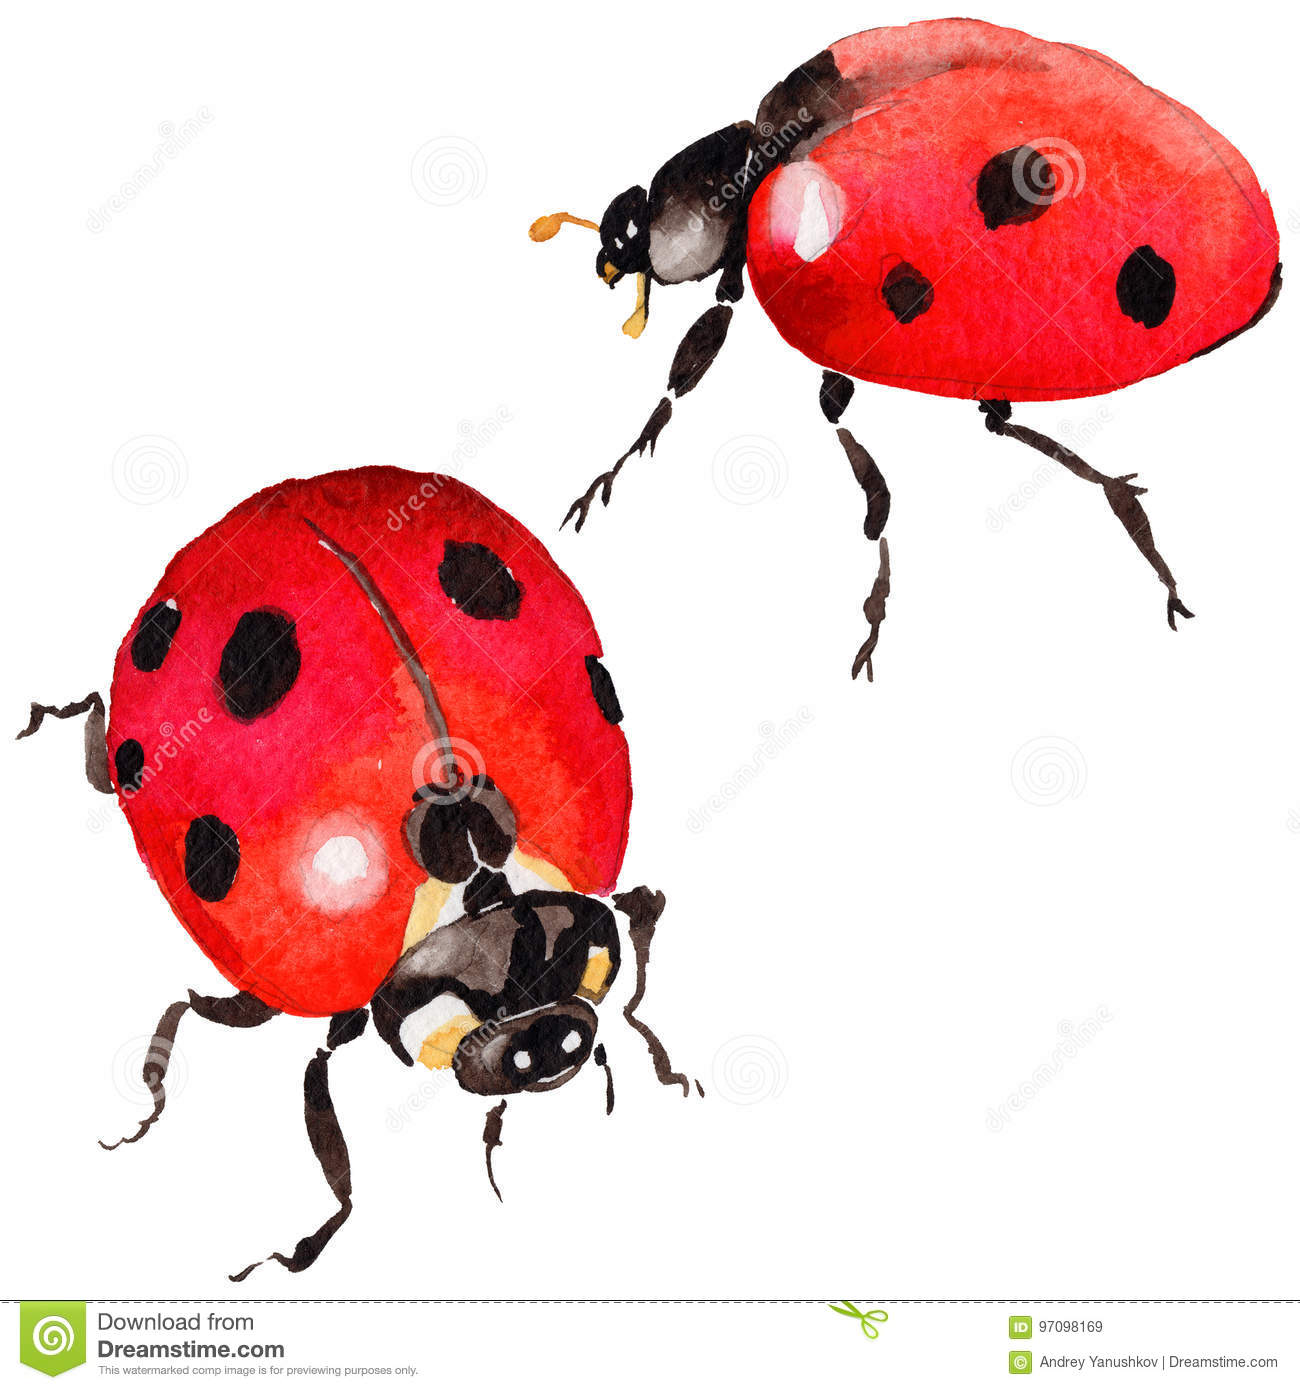 f264e91490d9e Exotic Ladybug Wild Insect In A Watercolor Style Isolated. Stock ...